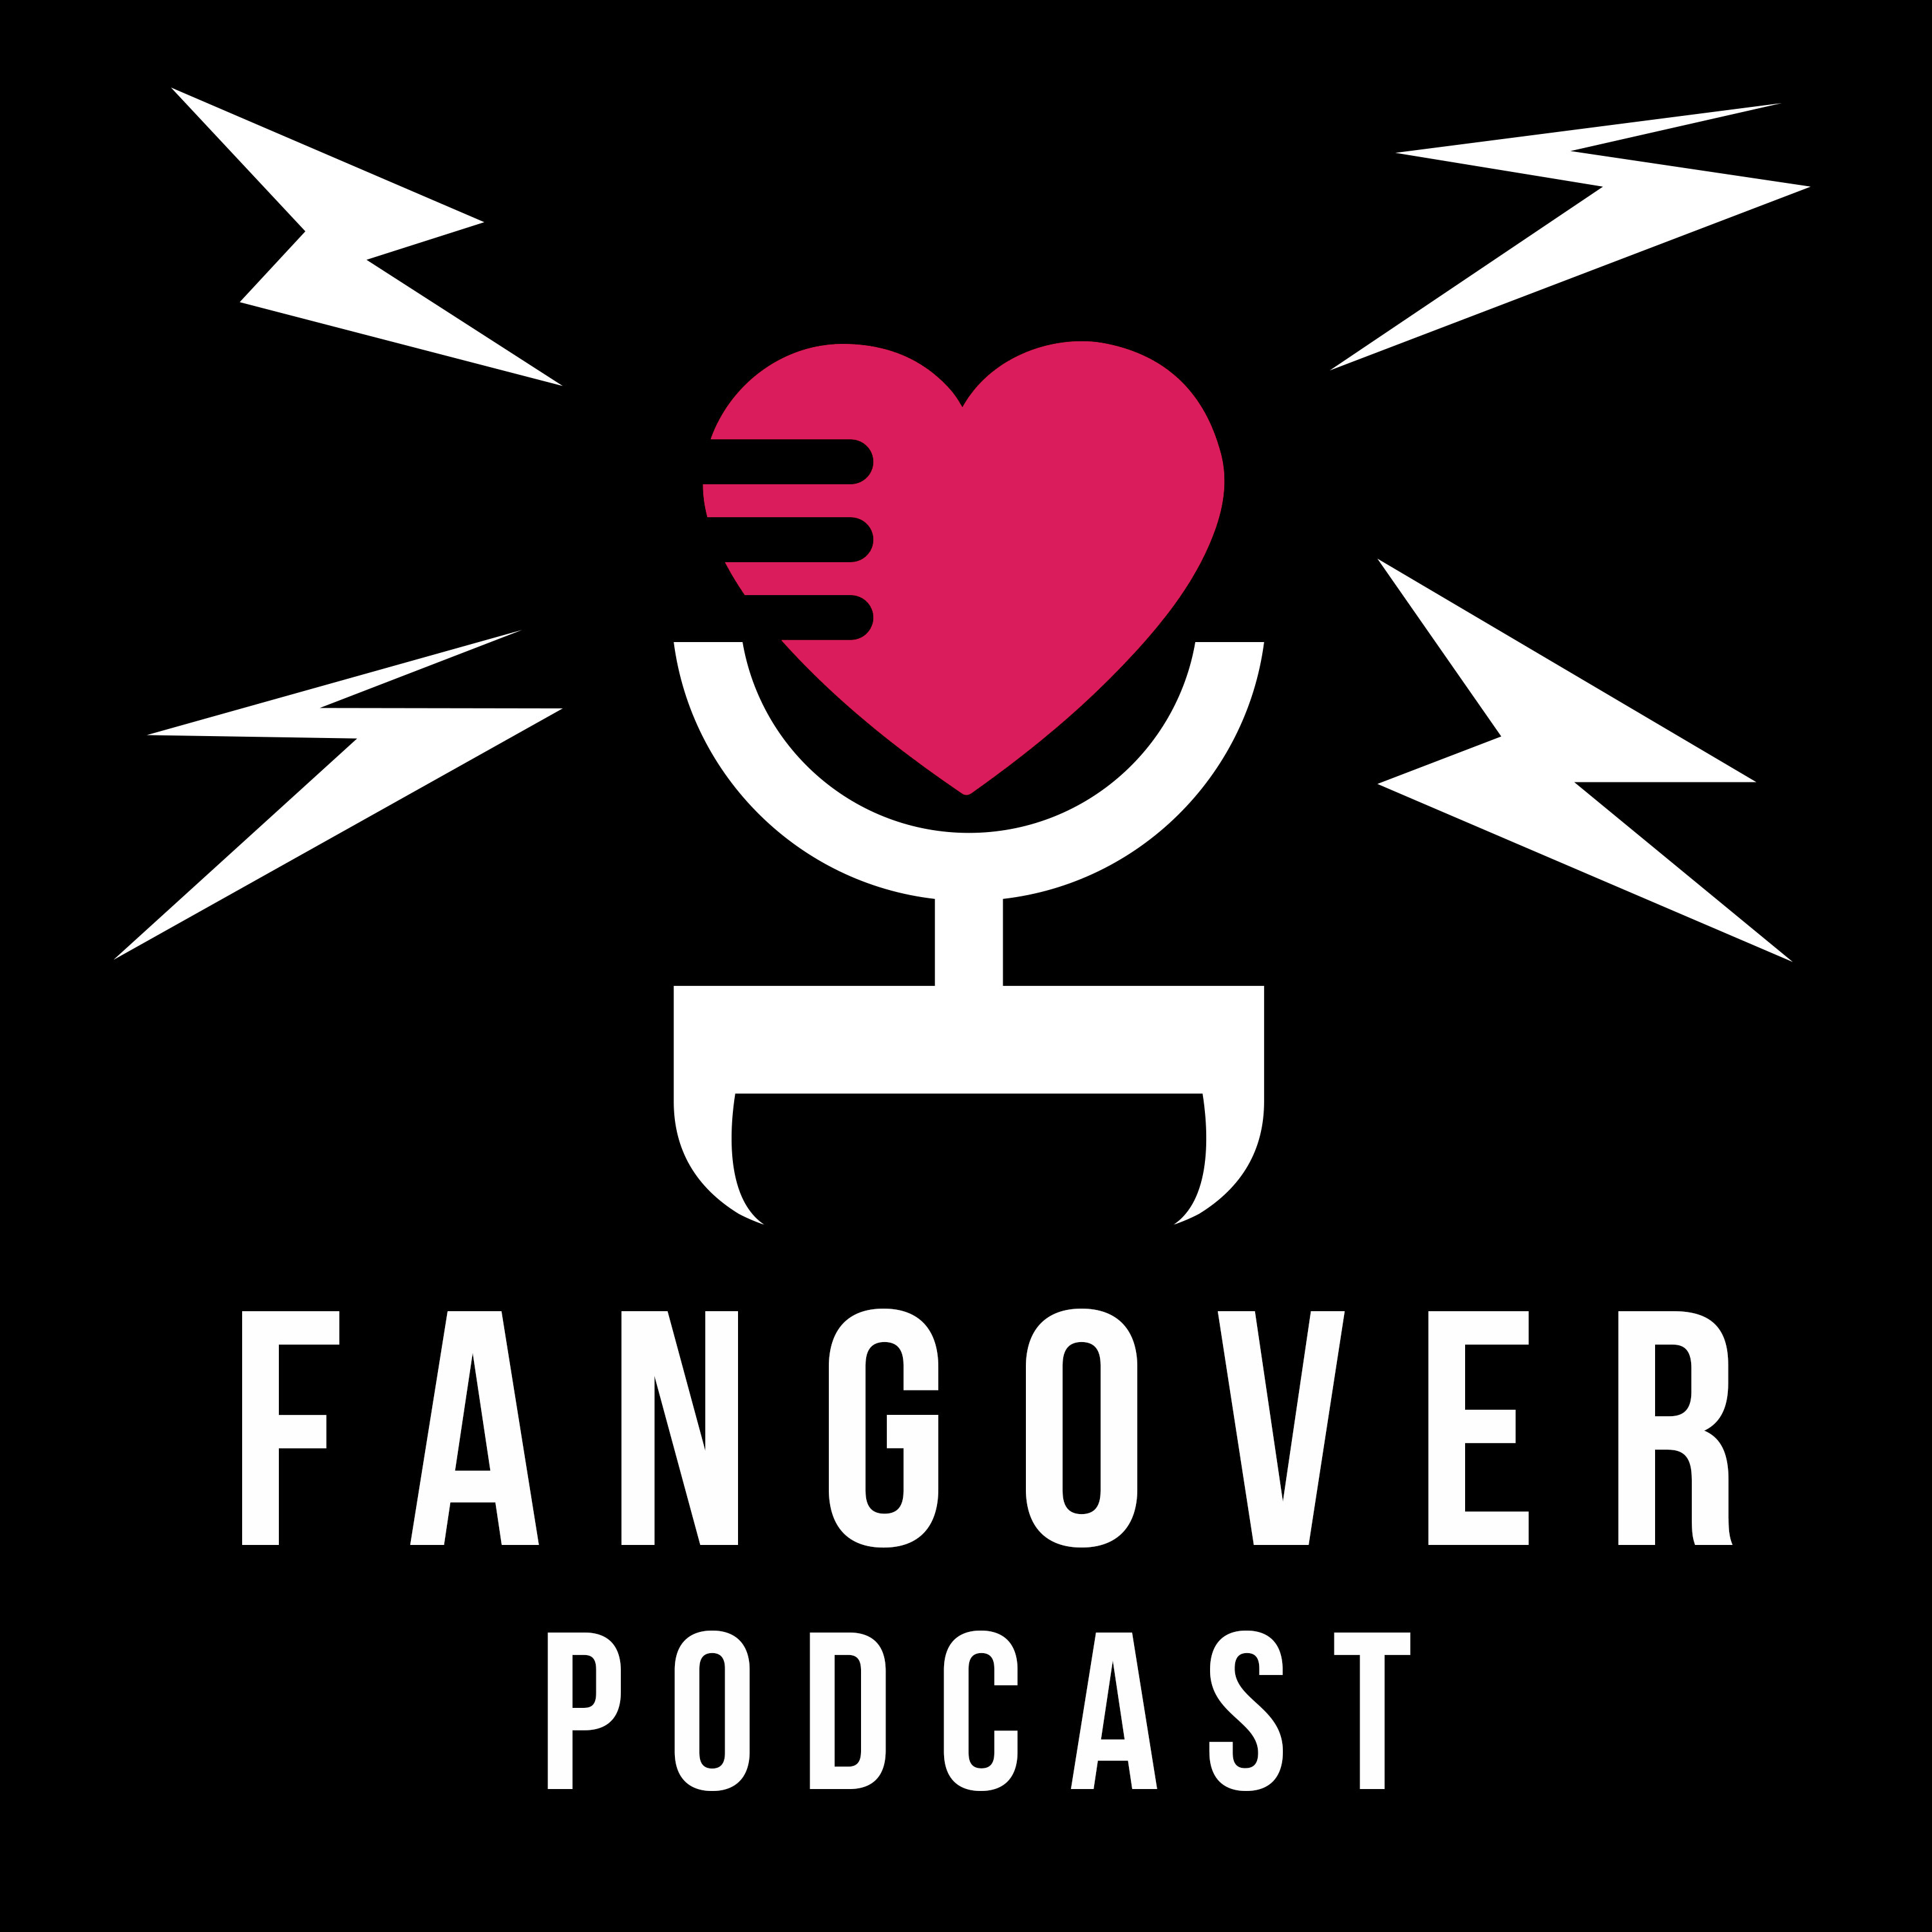 The Fangover Podcast show art